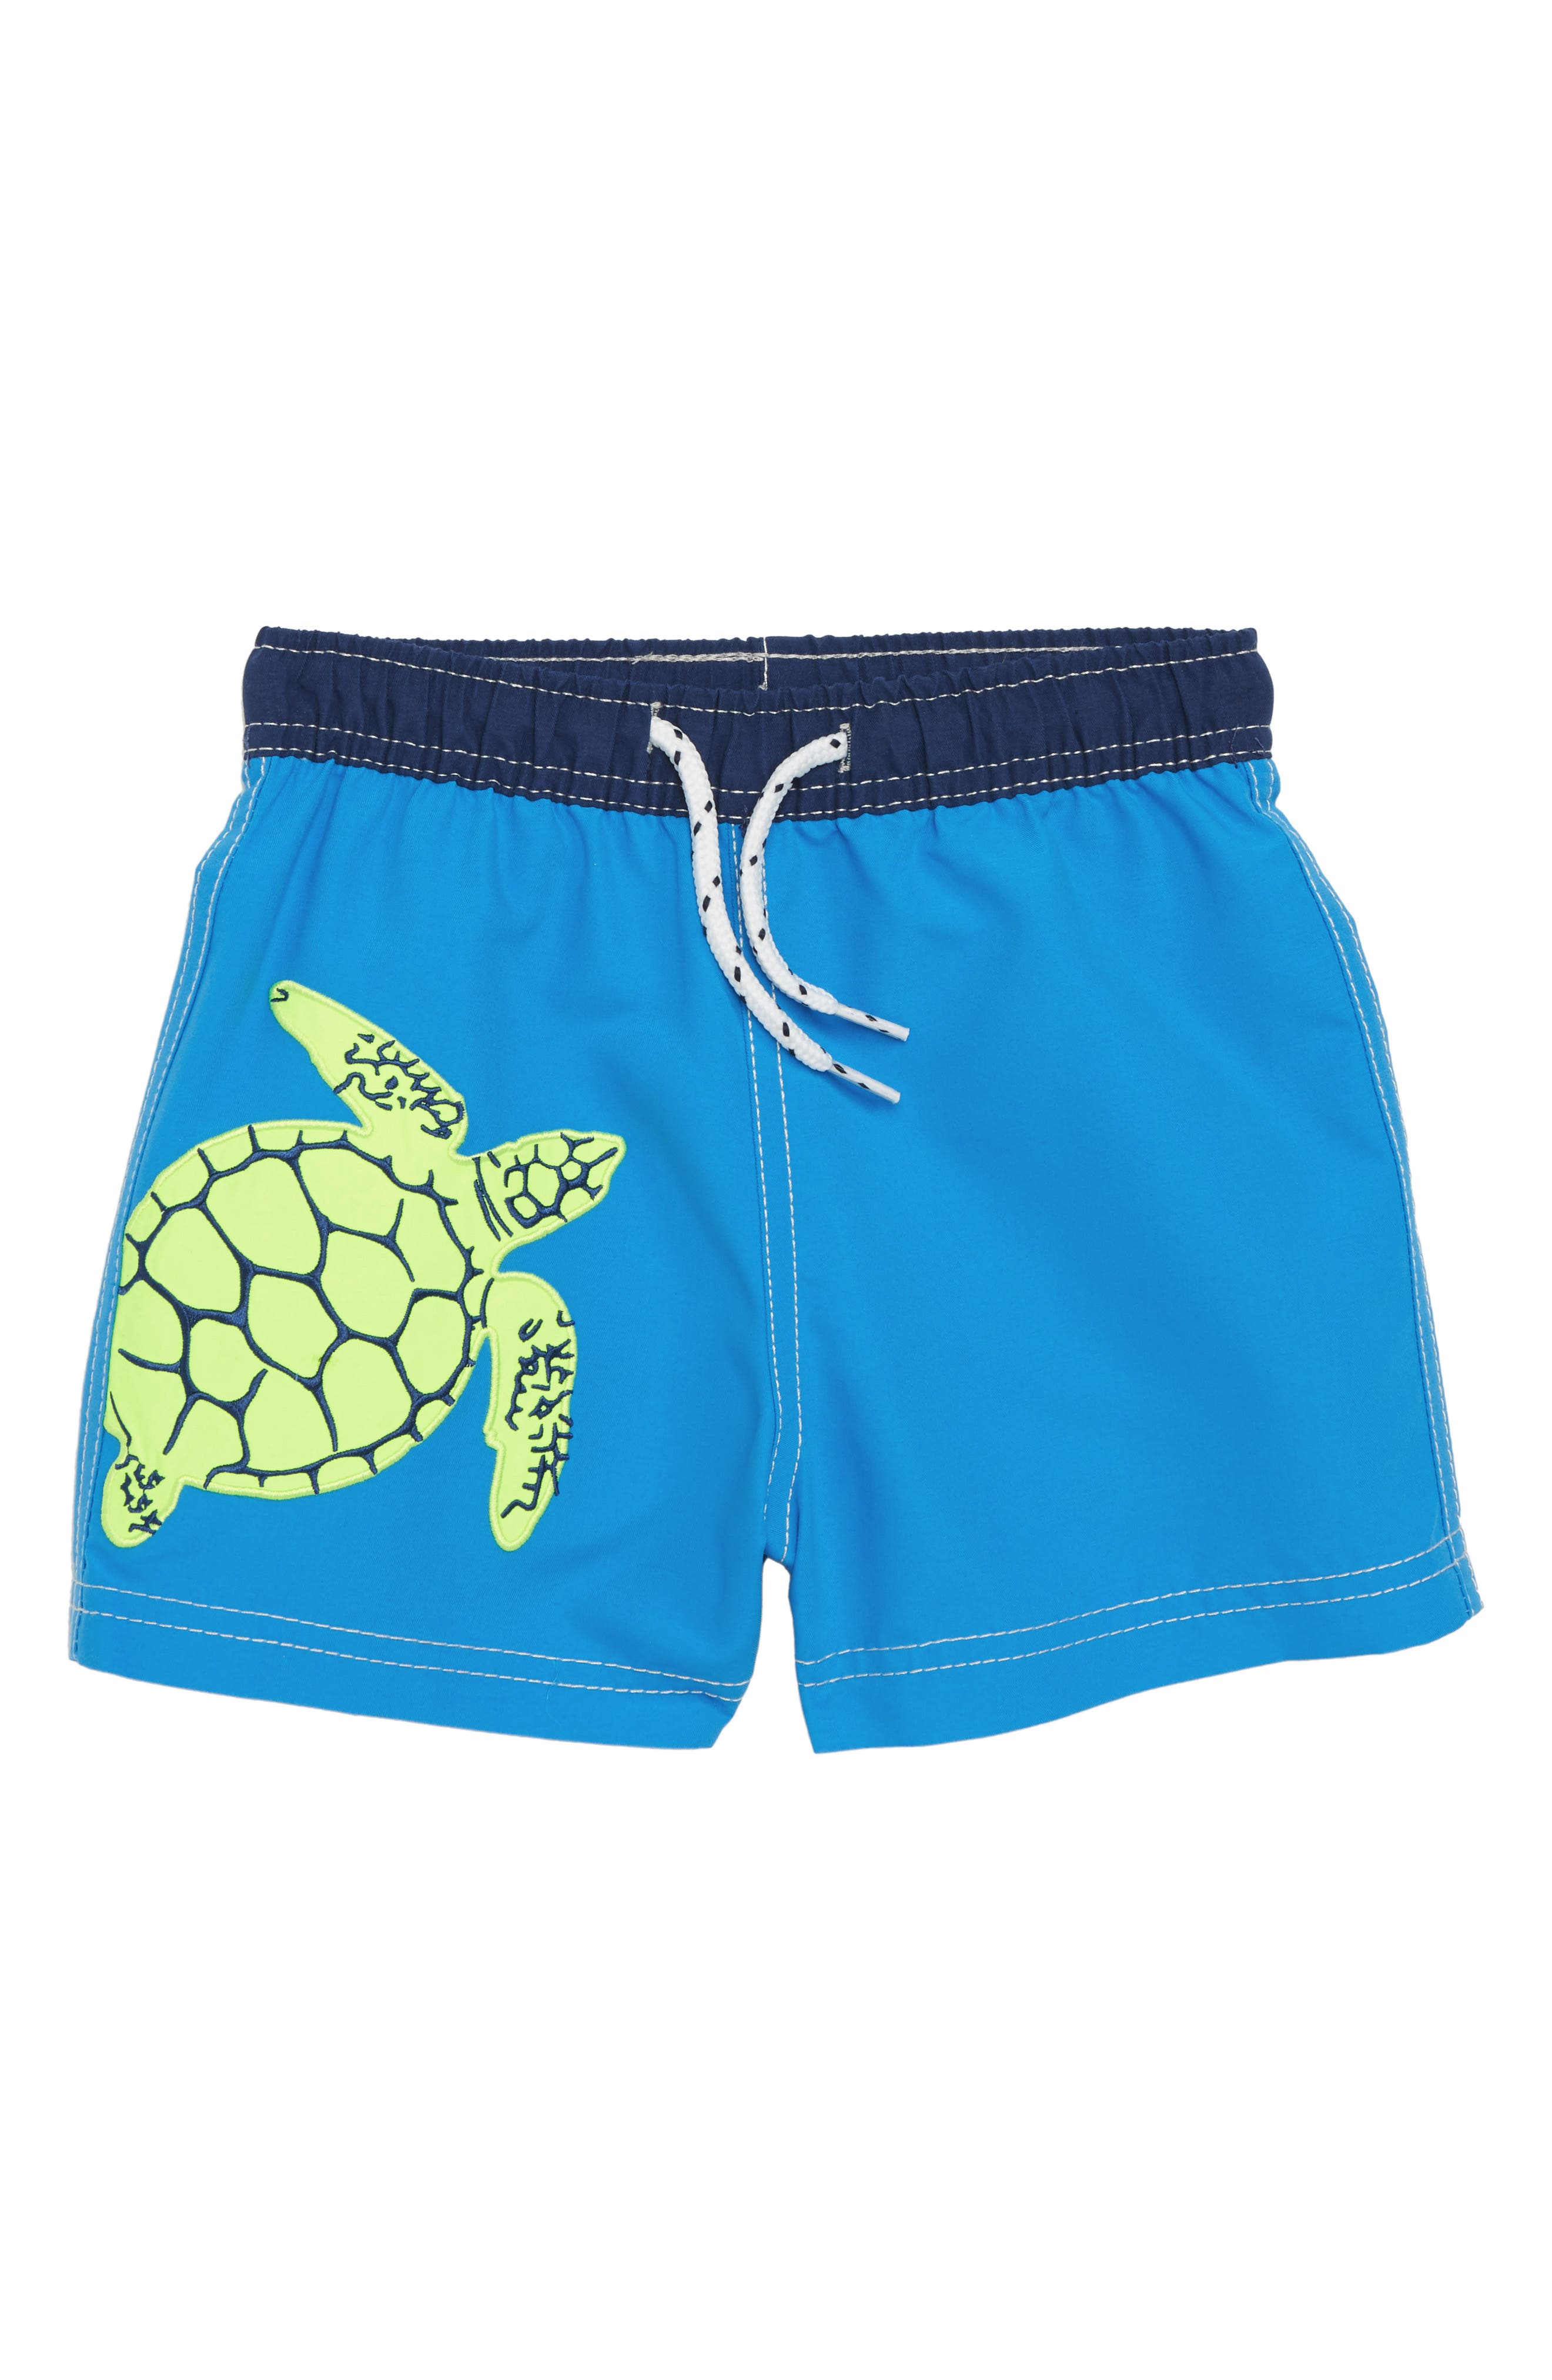 Embroidered Turtle Swim Trunks,                         Main,                         color, Acid Yellow Turtle